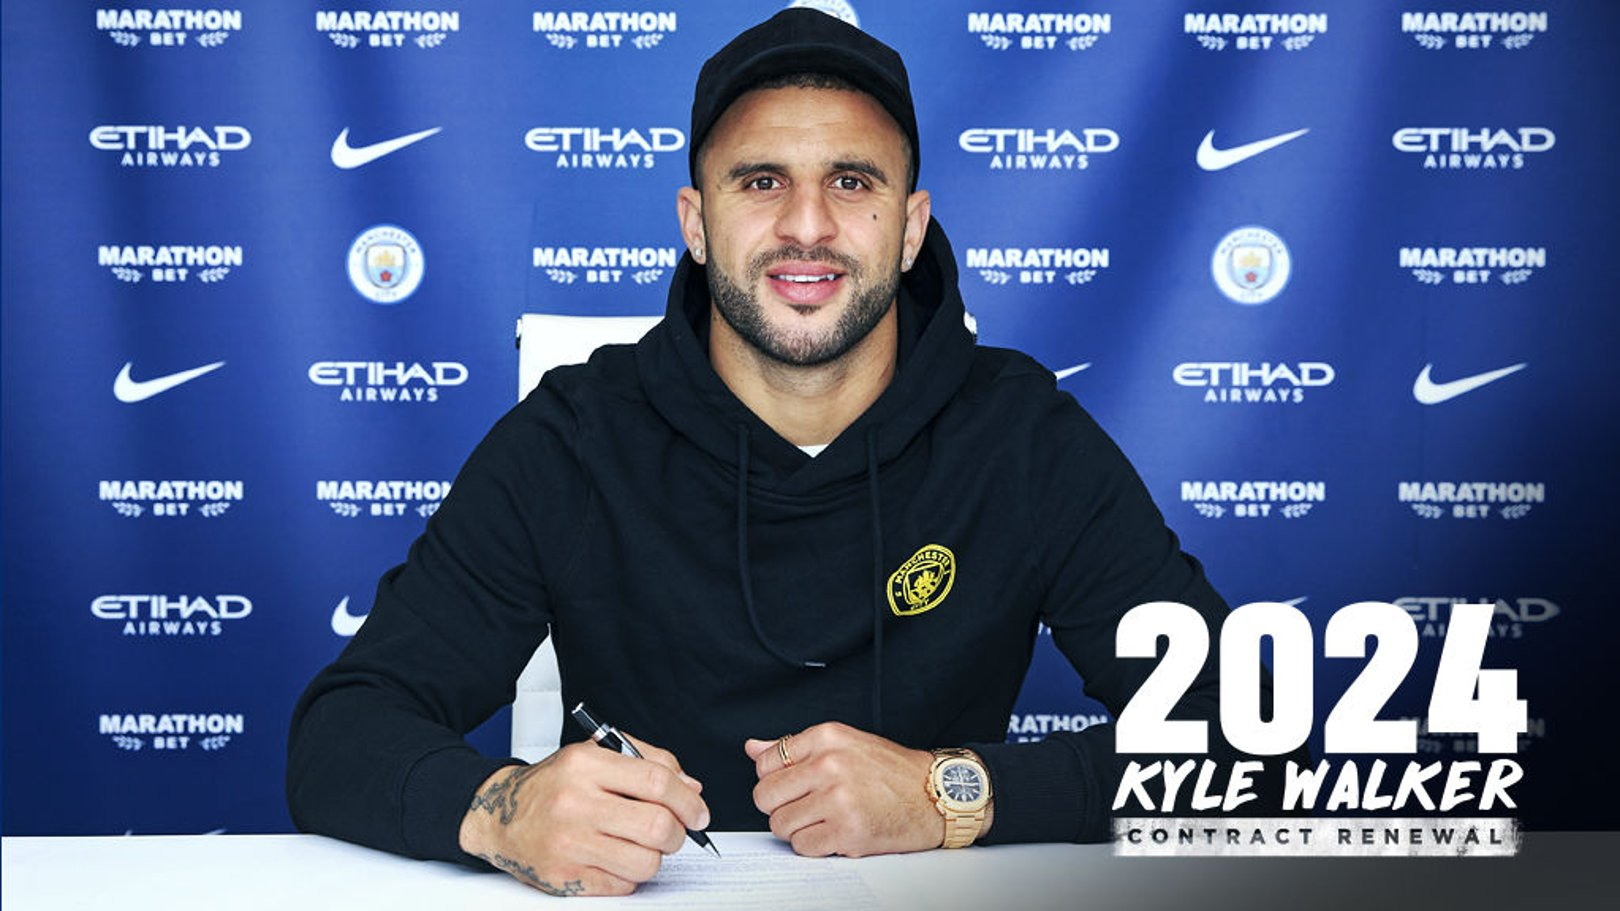 Kyle Walker signs new City contract